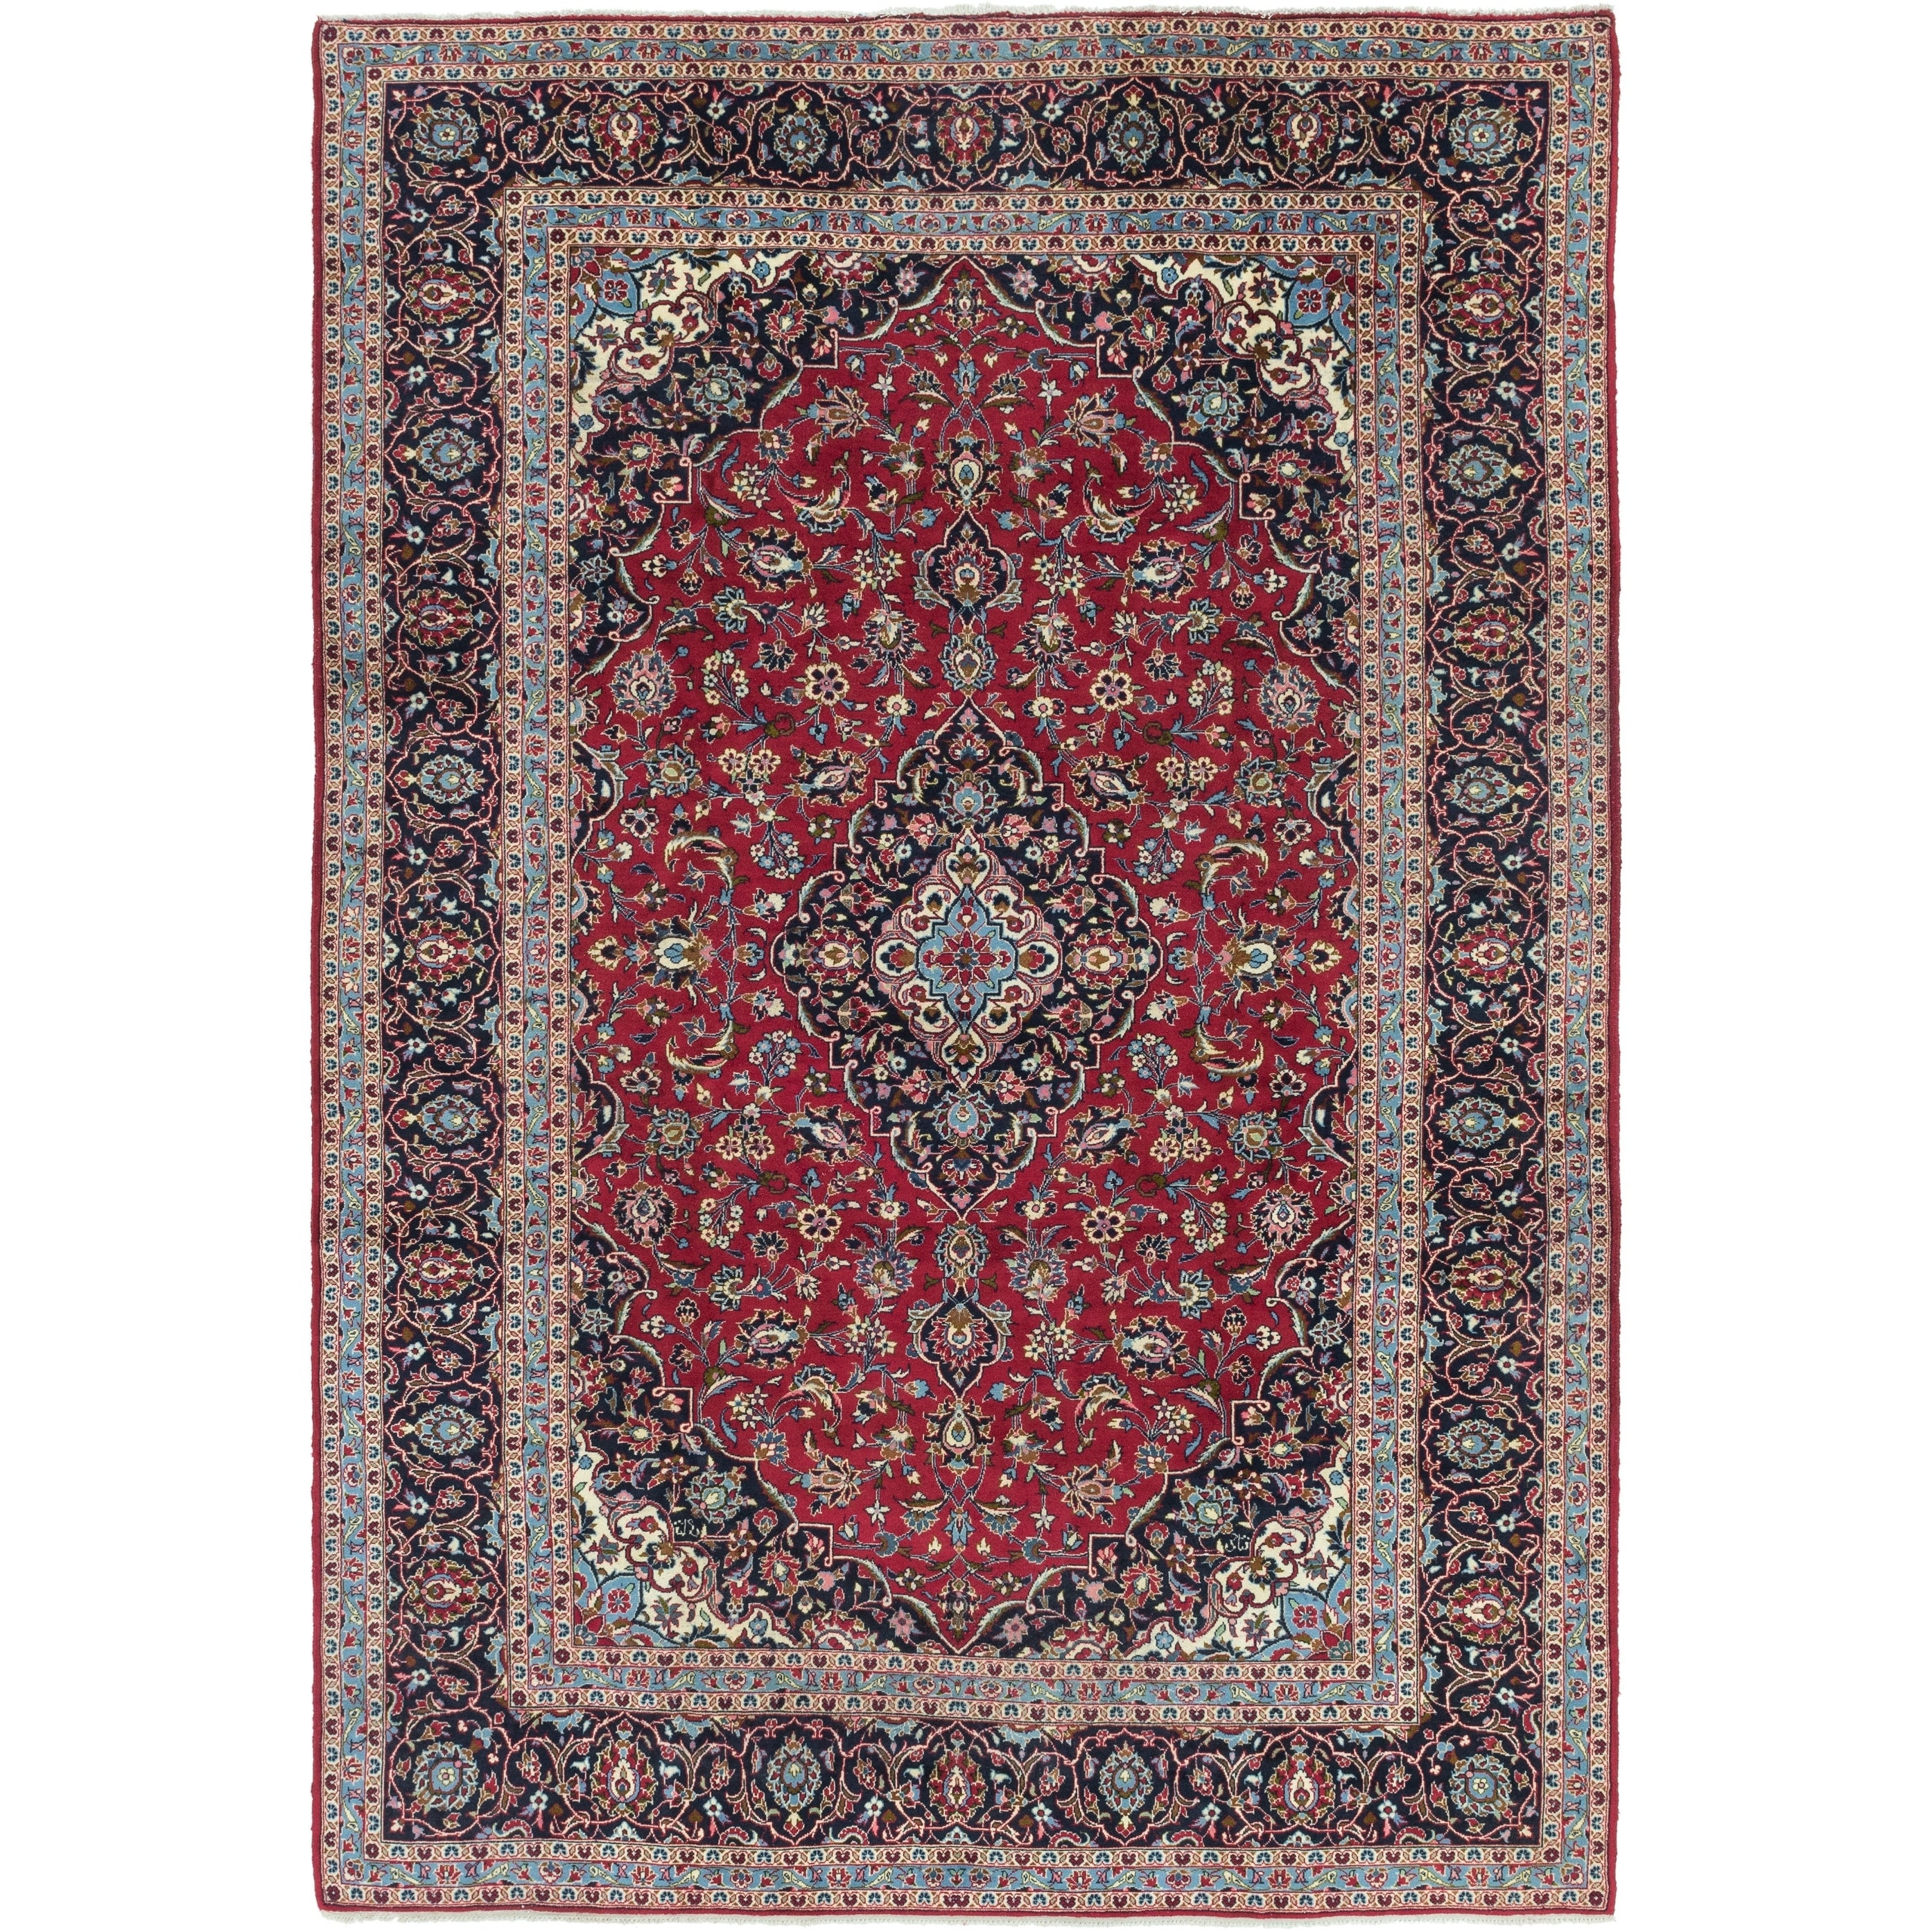 Hand Knotted Kashan Wool Area Rug - 8 x 12 (Red - 8 x 12)